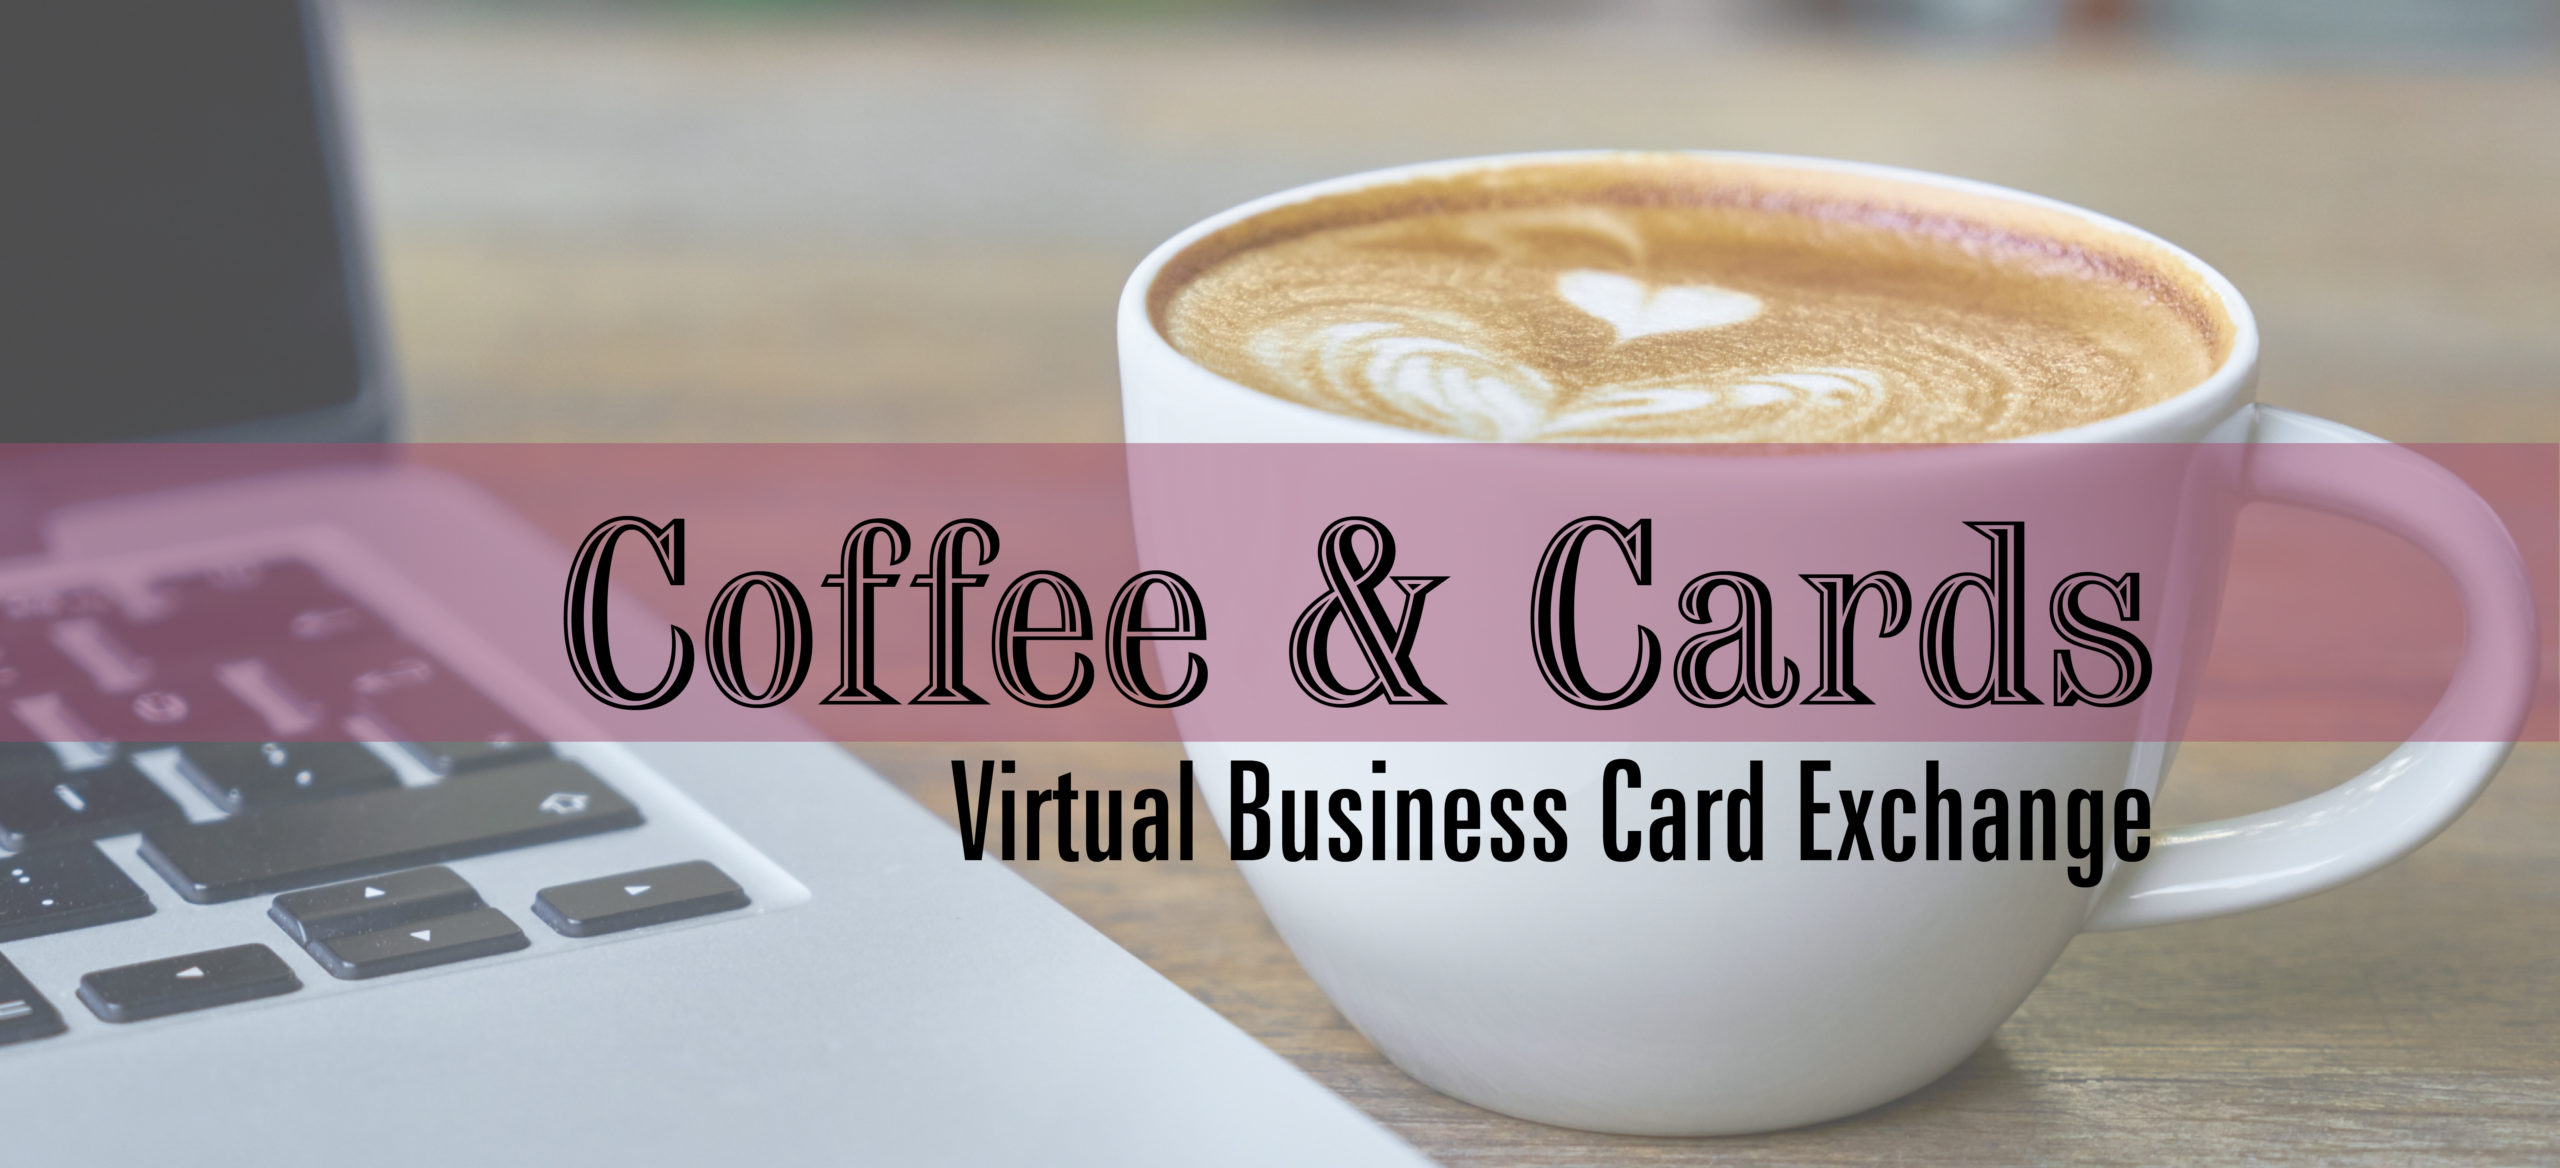 Coffee & Cards Virtual Business Card Exchange